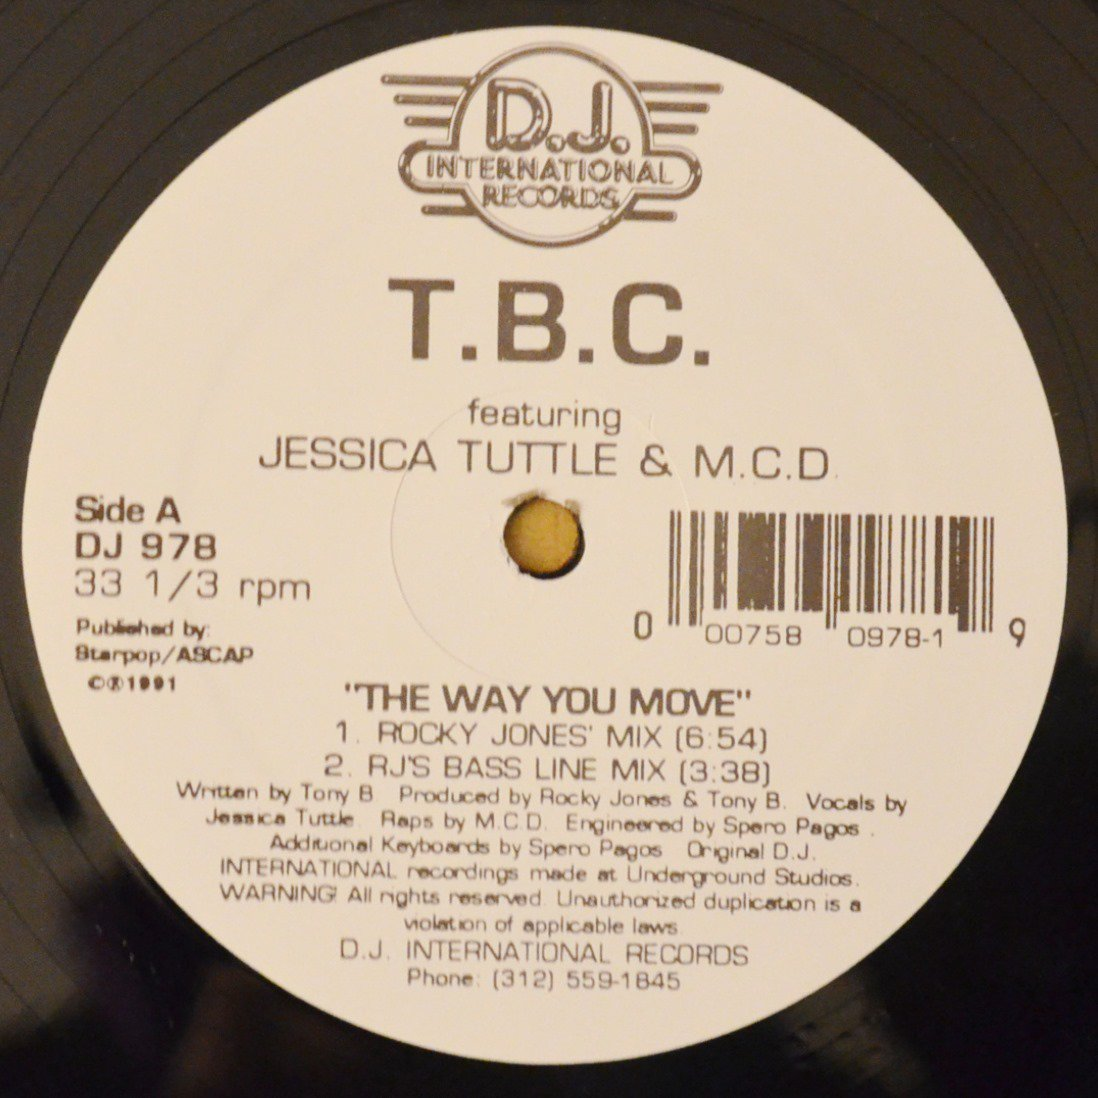 T.B.C. FEATURING JESSICA TUTTLE & M.C.D. / THE WAY YOU MOVE (12